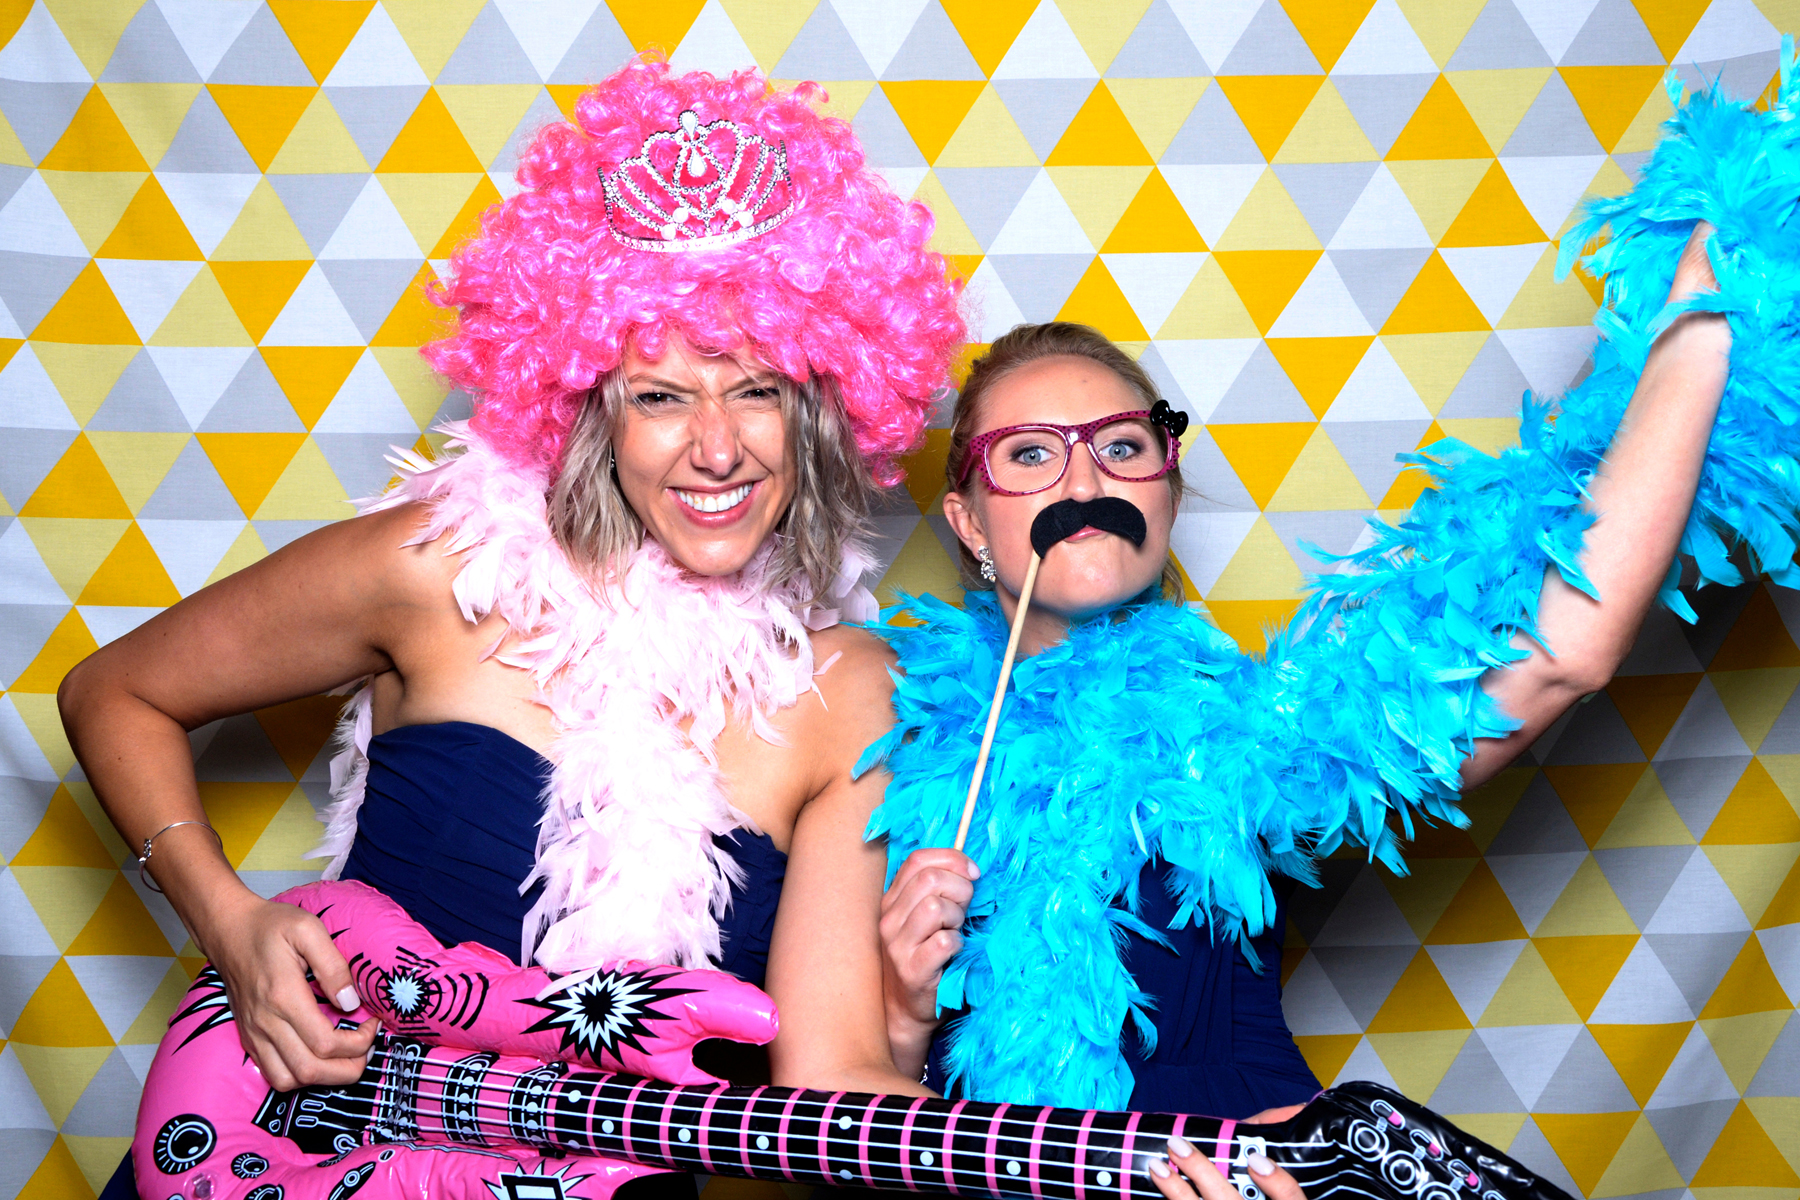 bearbooth-photobooth-backdrop-yellow-triangles.jpg